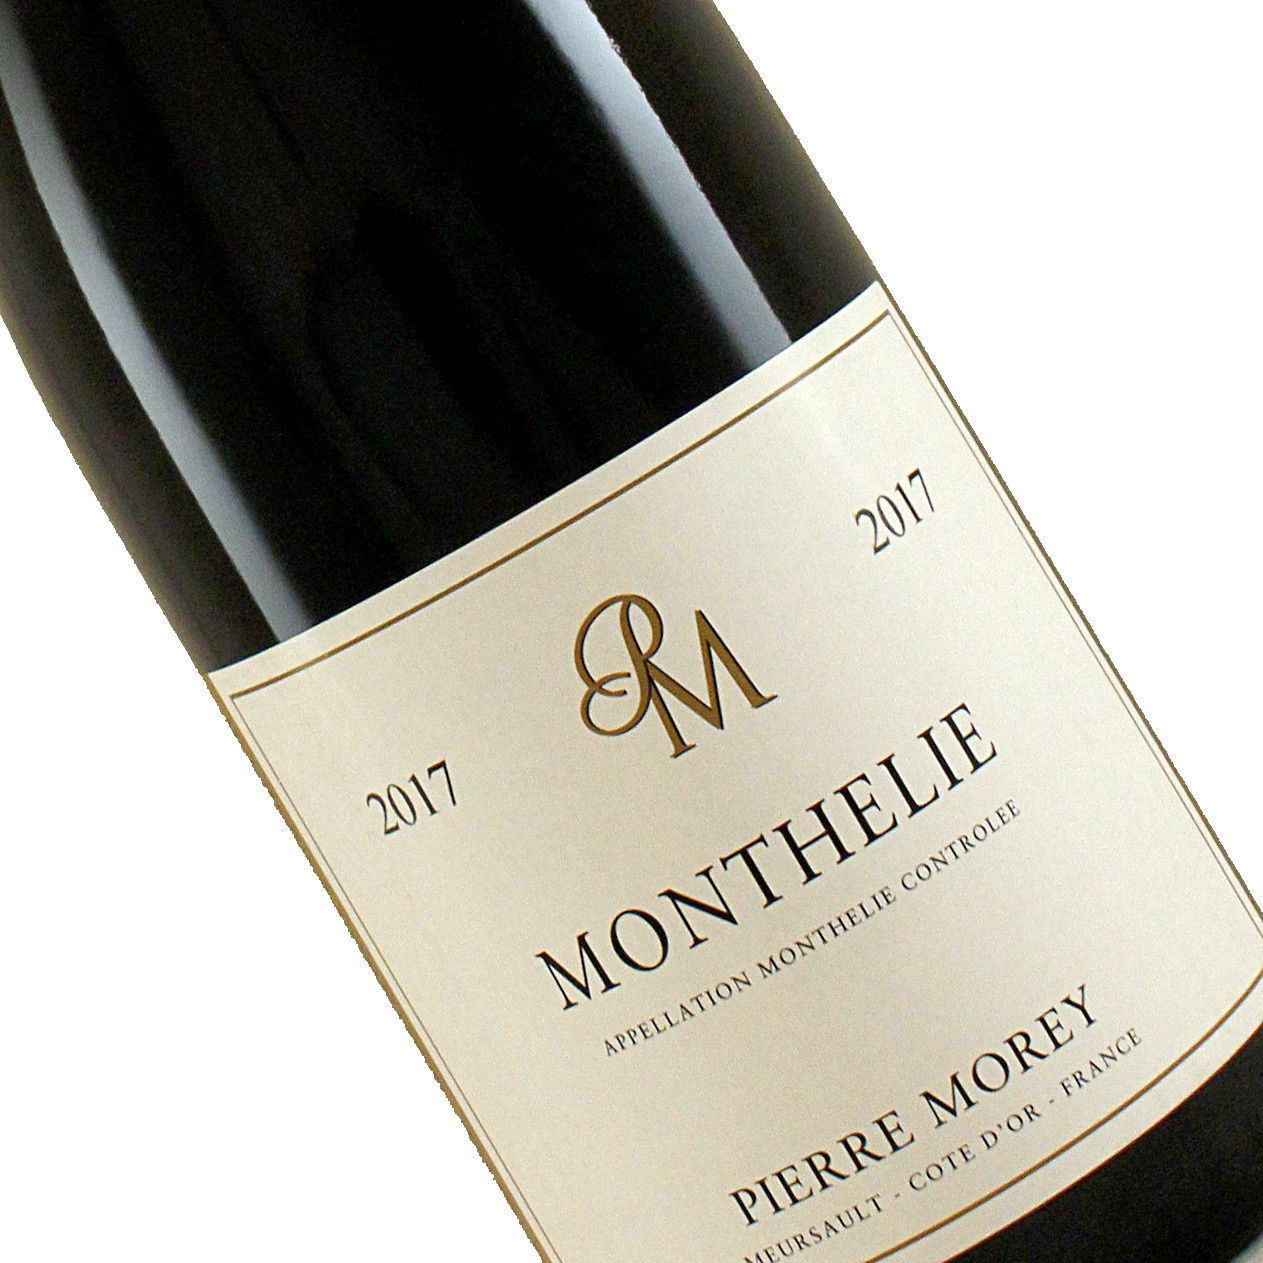 Pierre Morey 2017 Monthelie Rouge, Burgundy